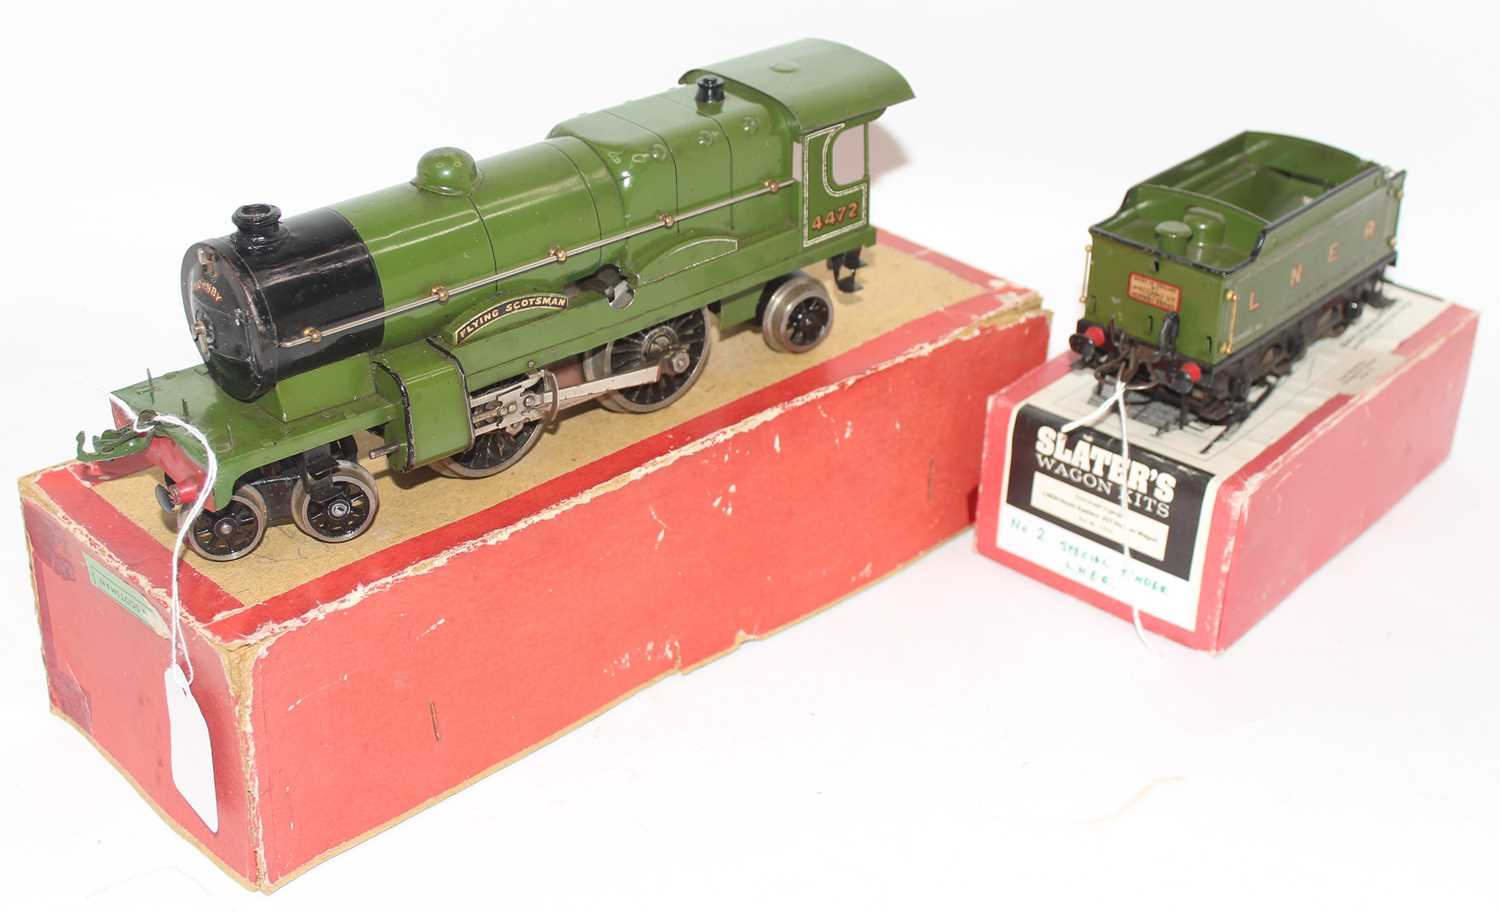 Hornby no. 3 loco and tender Flying Scotsman. Vendor advises converted to clockwork from electric,